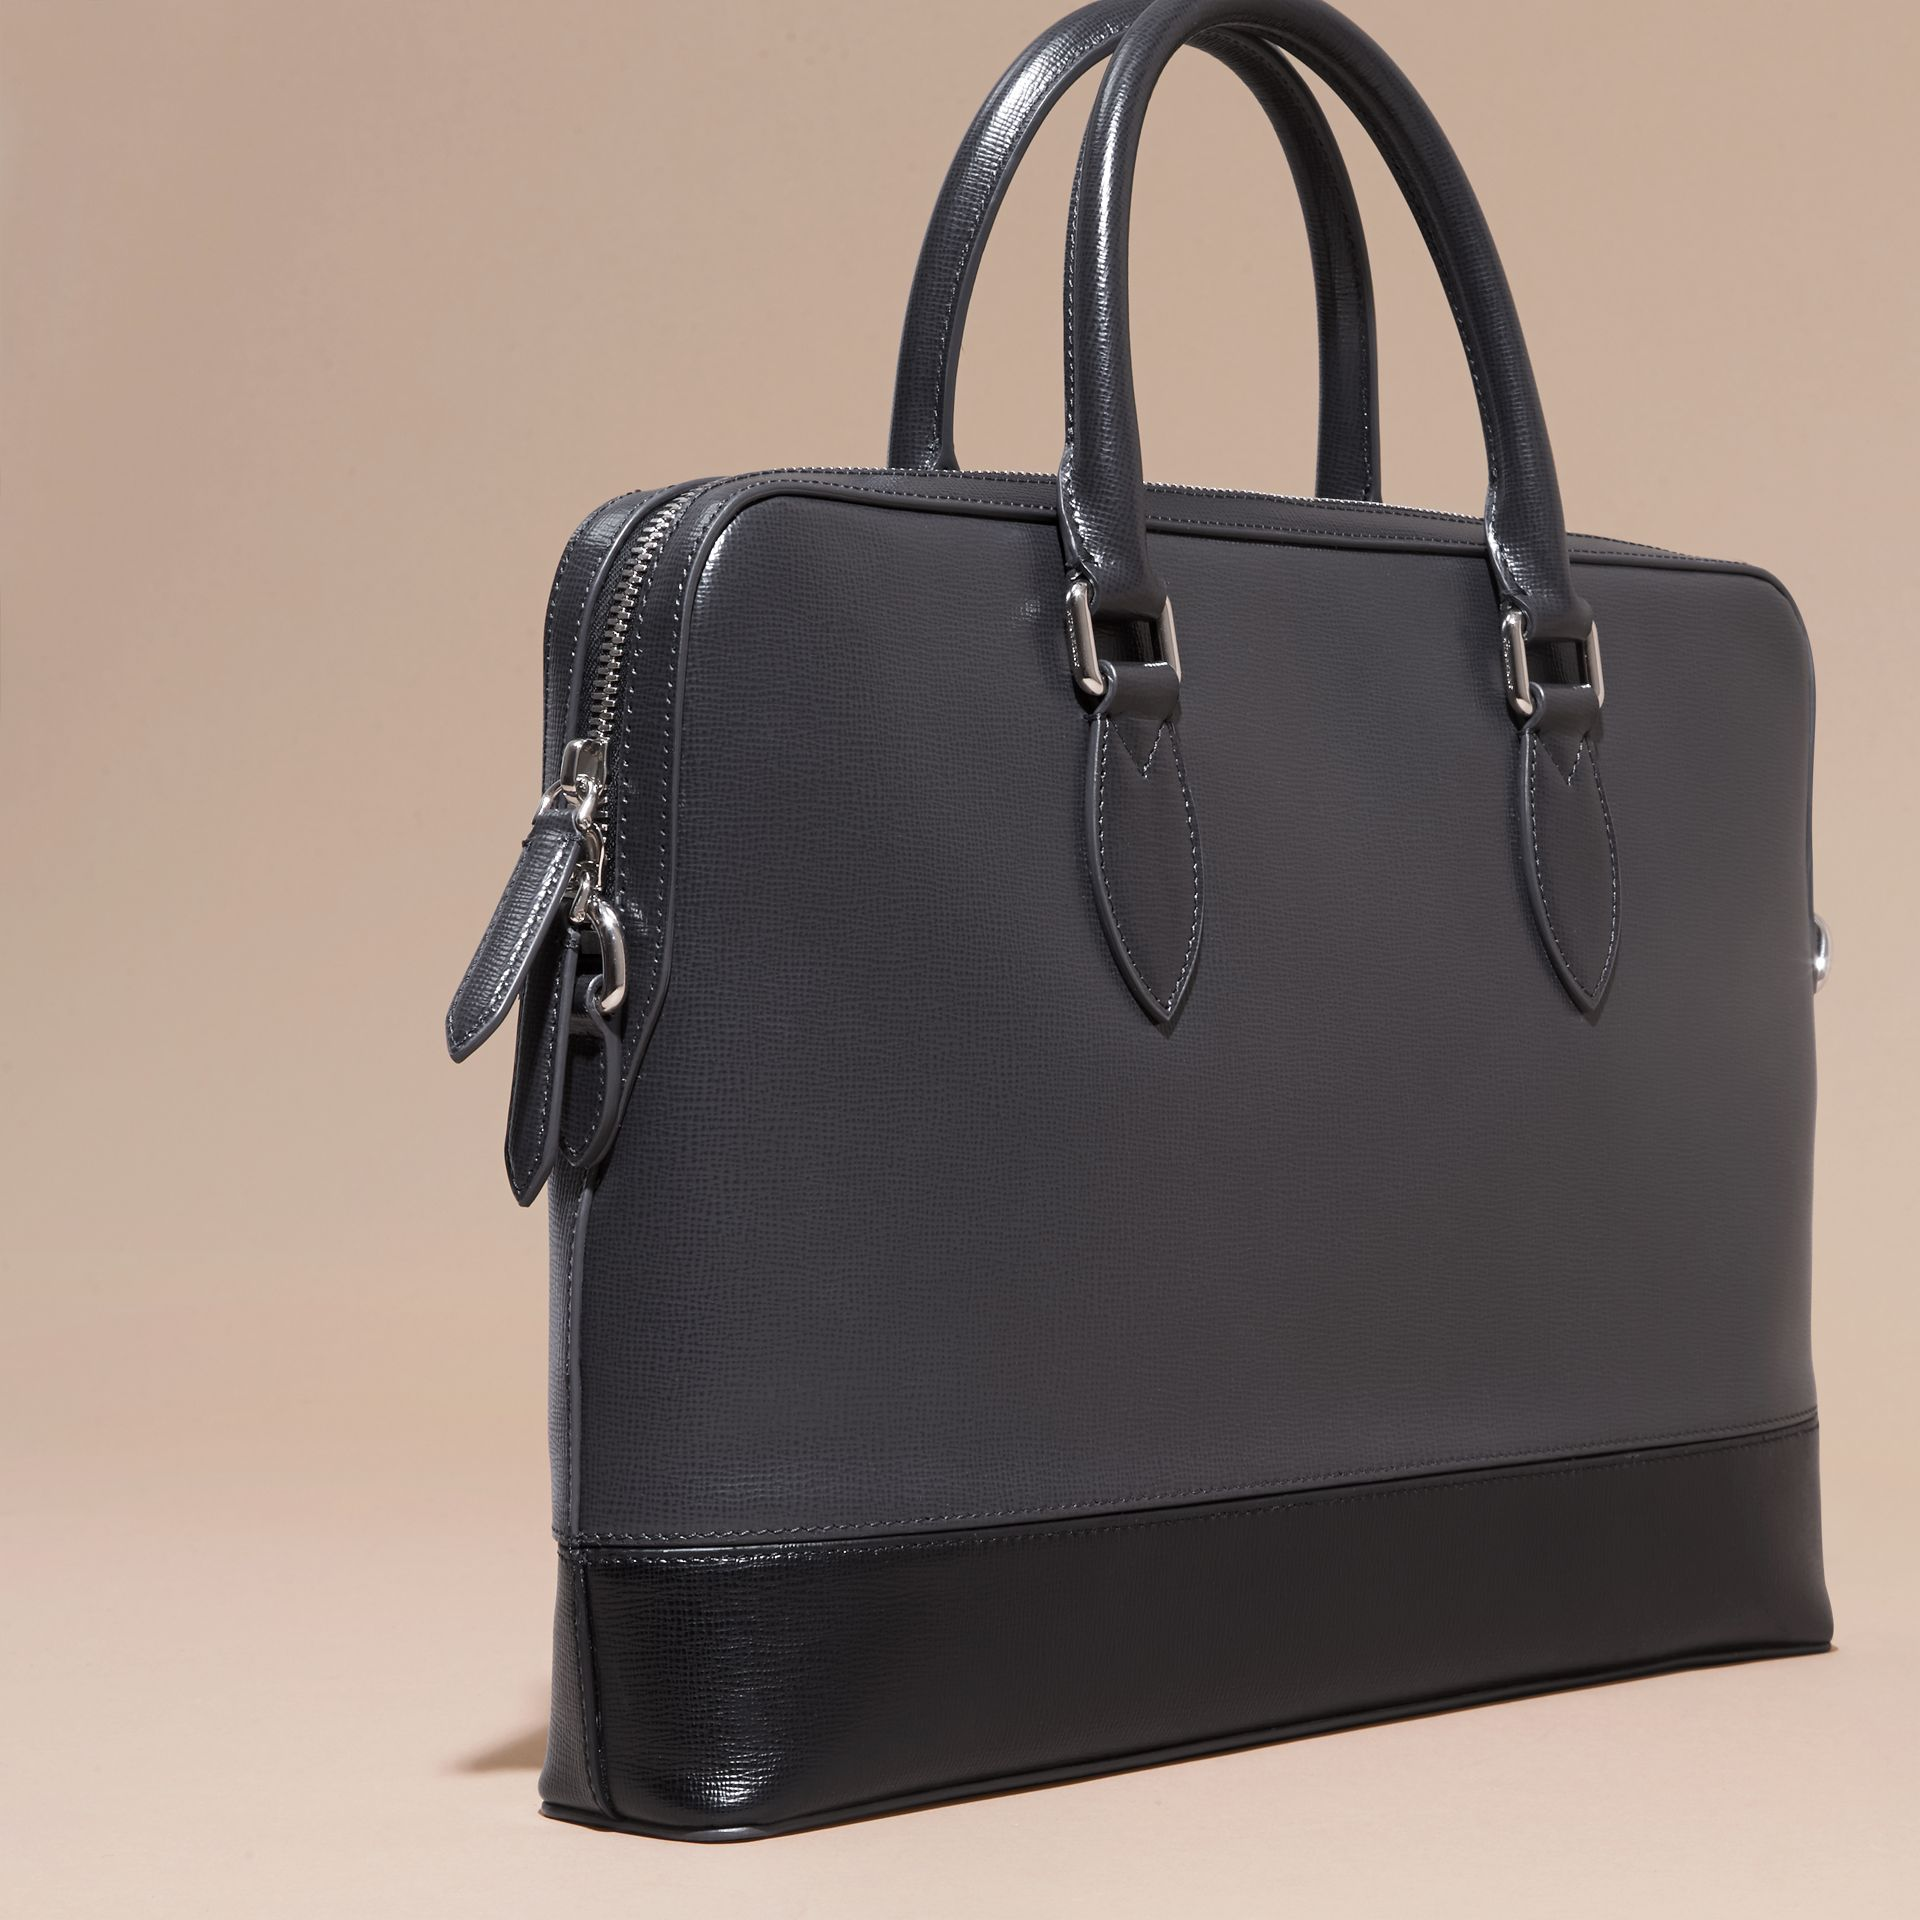 Anthracite/noir Sac The Barrow fin en cuir London à panneaux Anthracite/noir - photo de la galerie 4